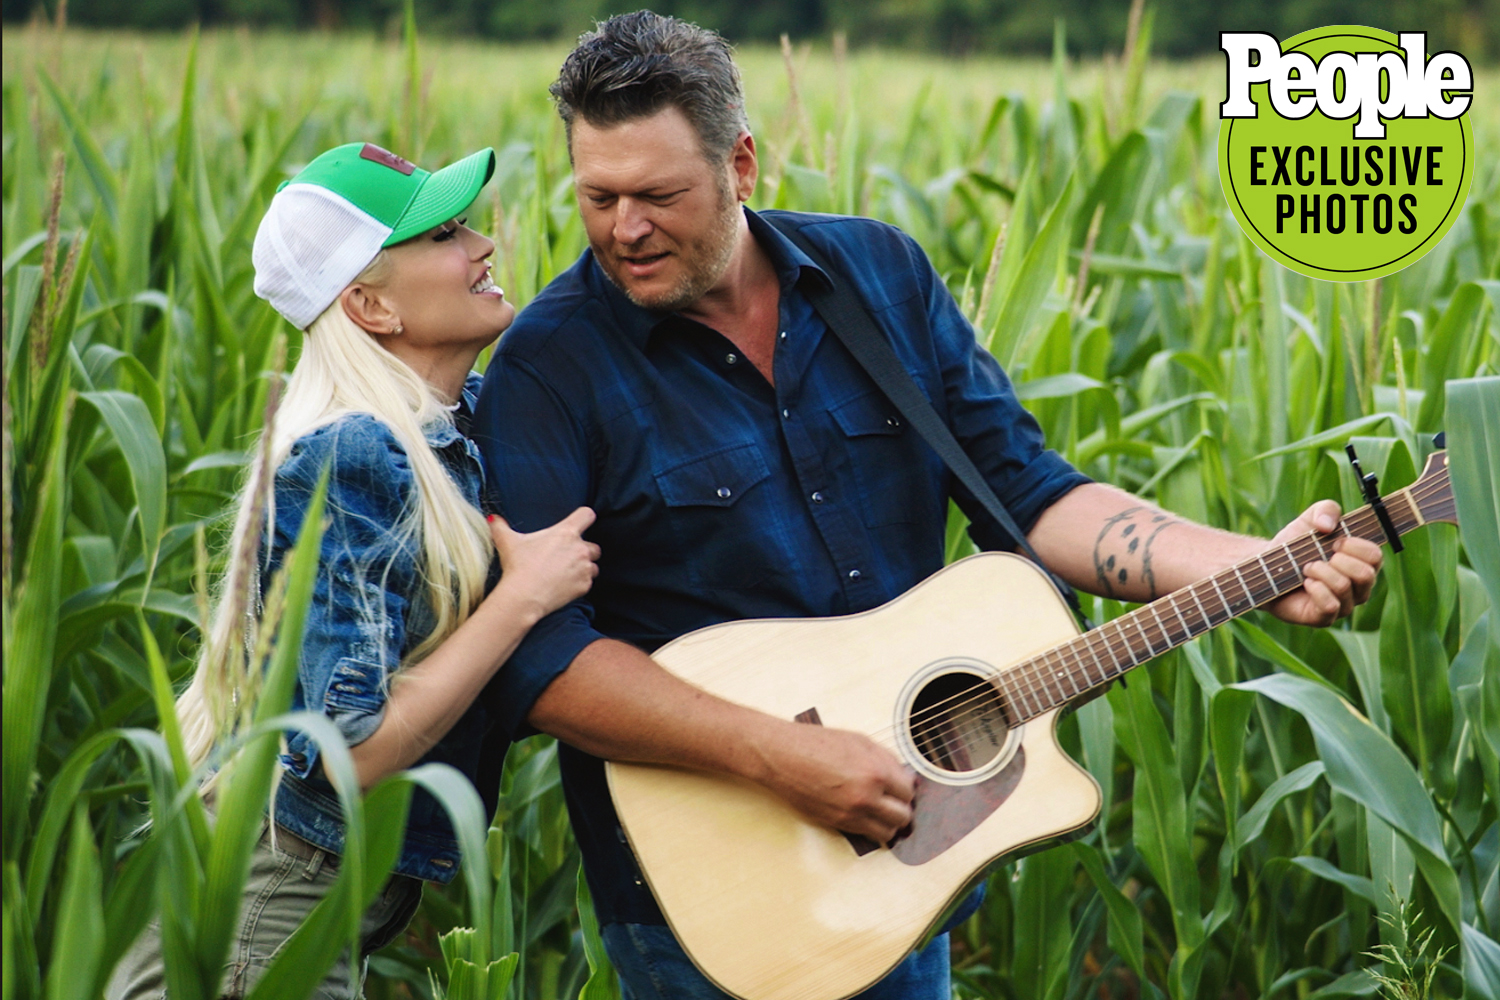 blake shelton and gwen stefani music video